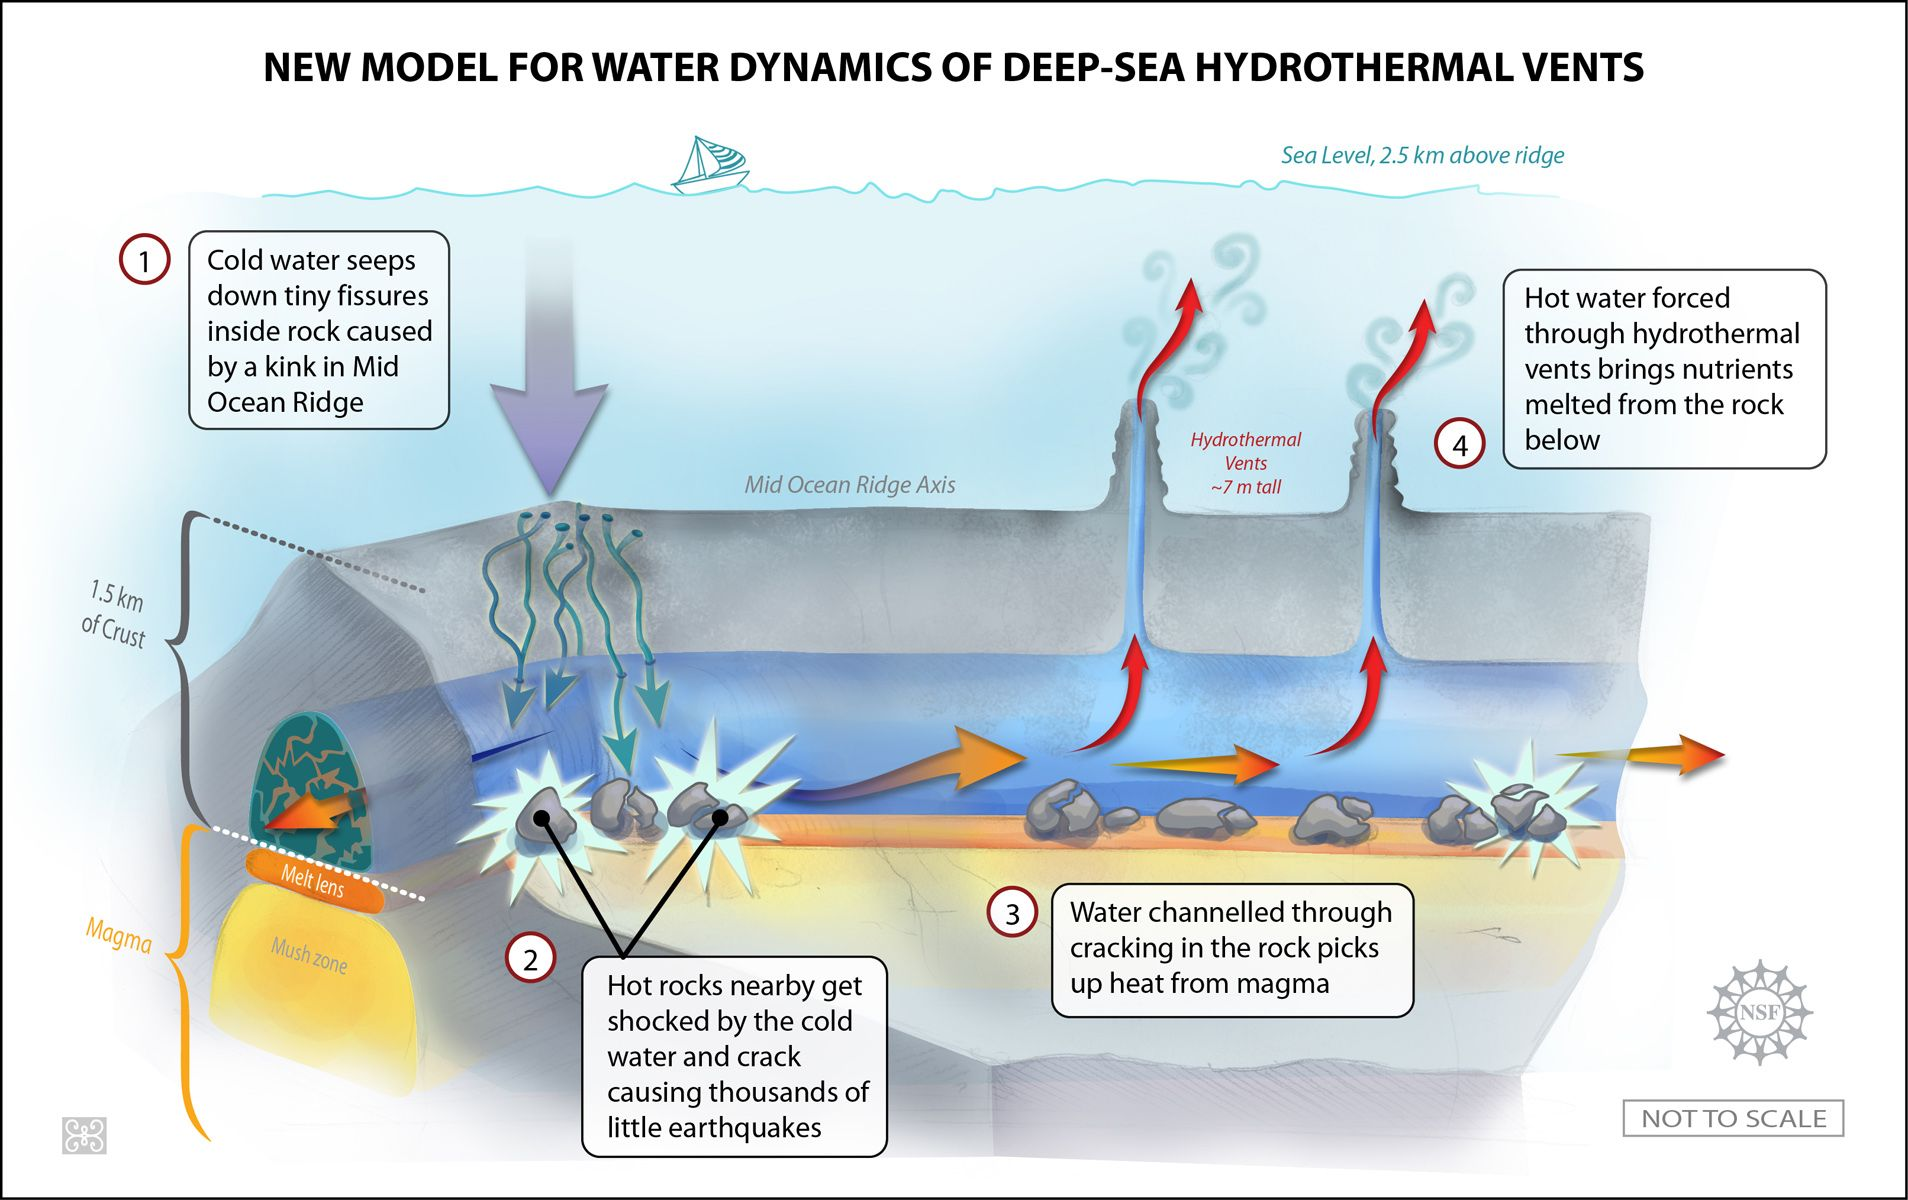 hight resolution of new model for water dynamics of hydrothermal vents seafloor spreading plate tectonics earth science